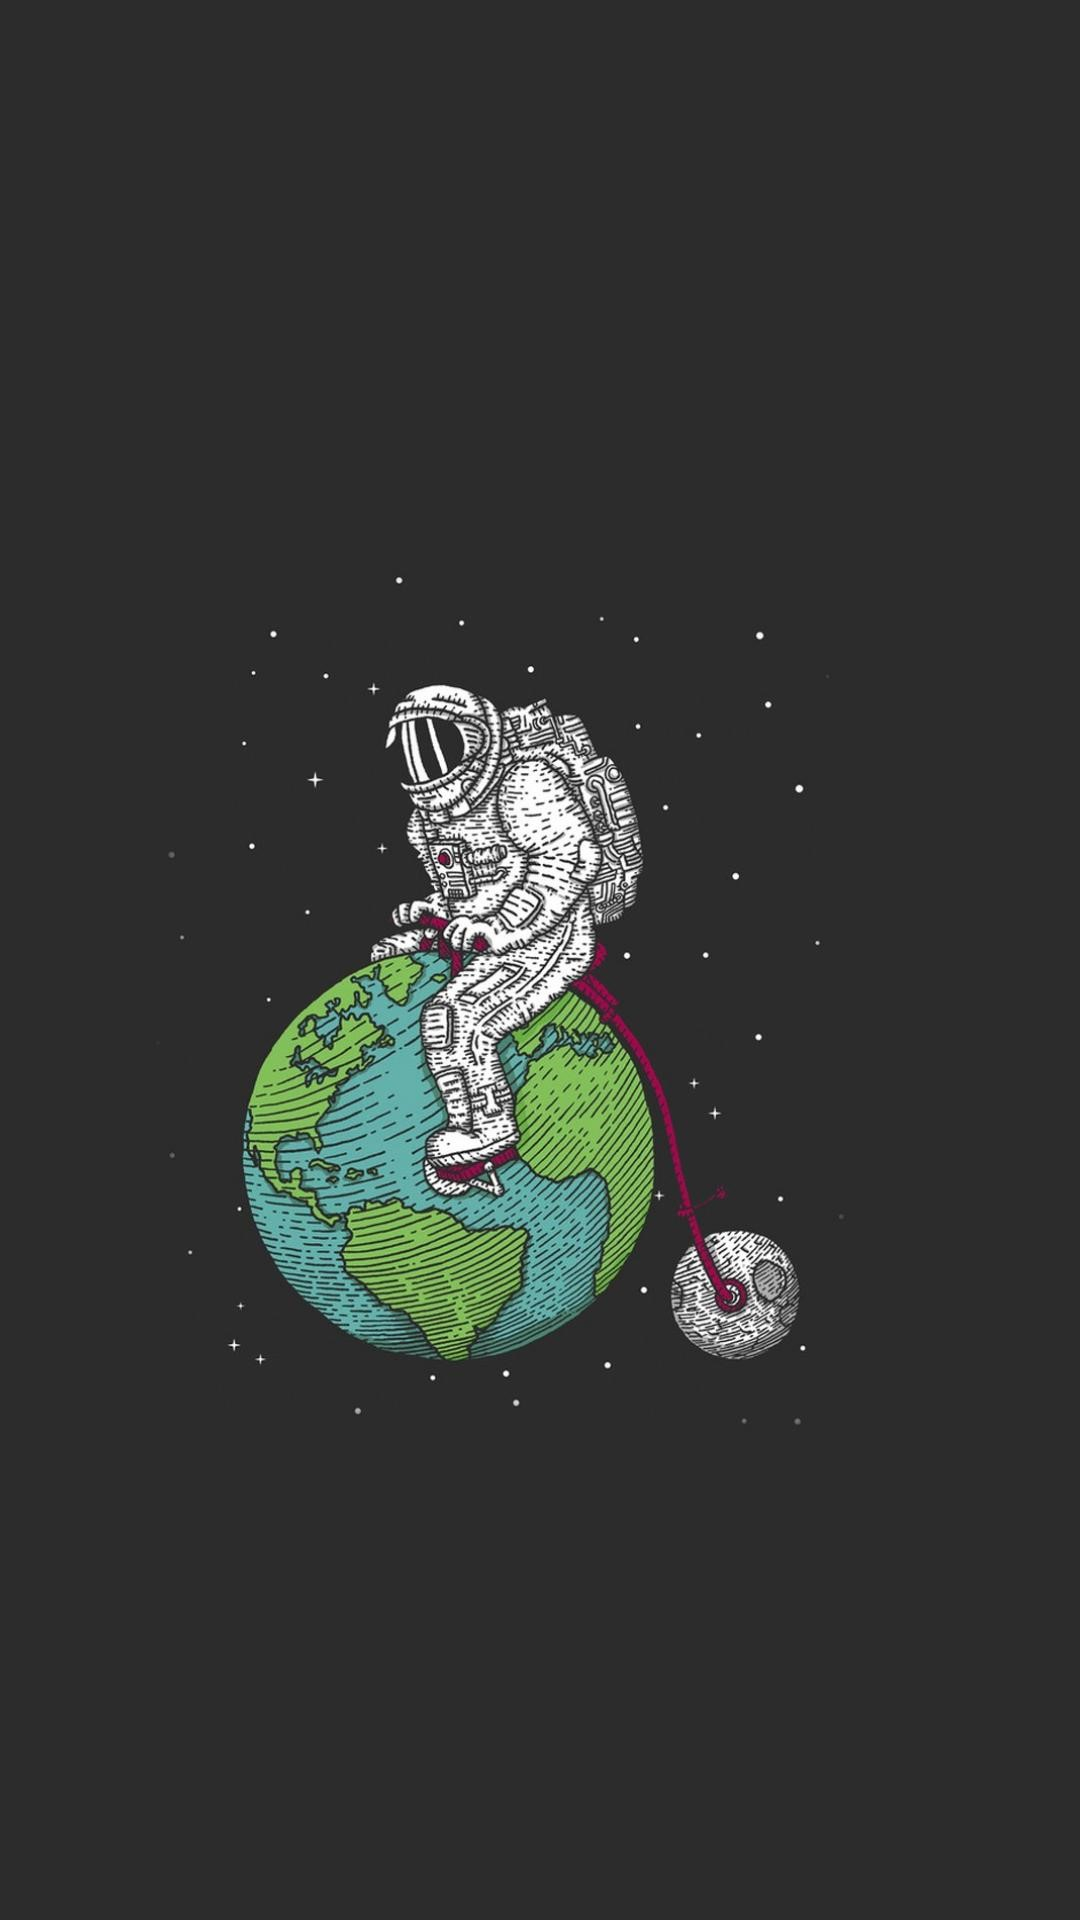 funny iphone wallpaper astronaut wallpaper iphone funny iphone 6 plus